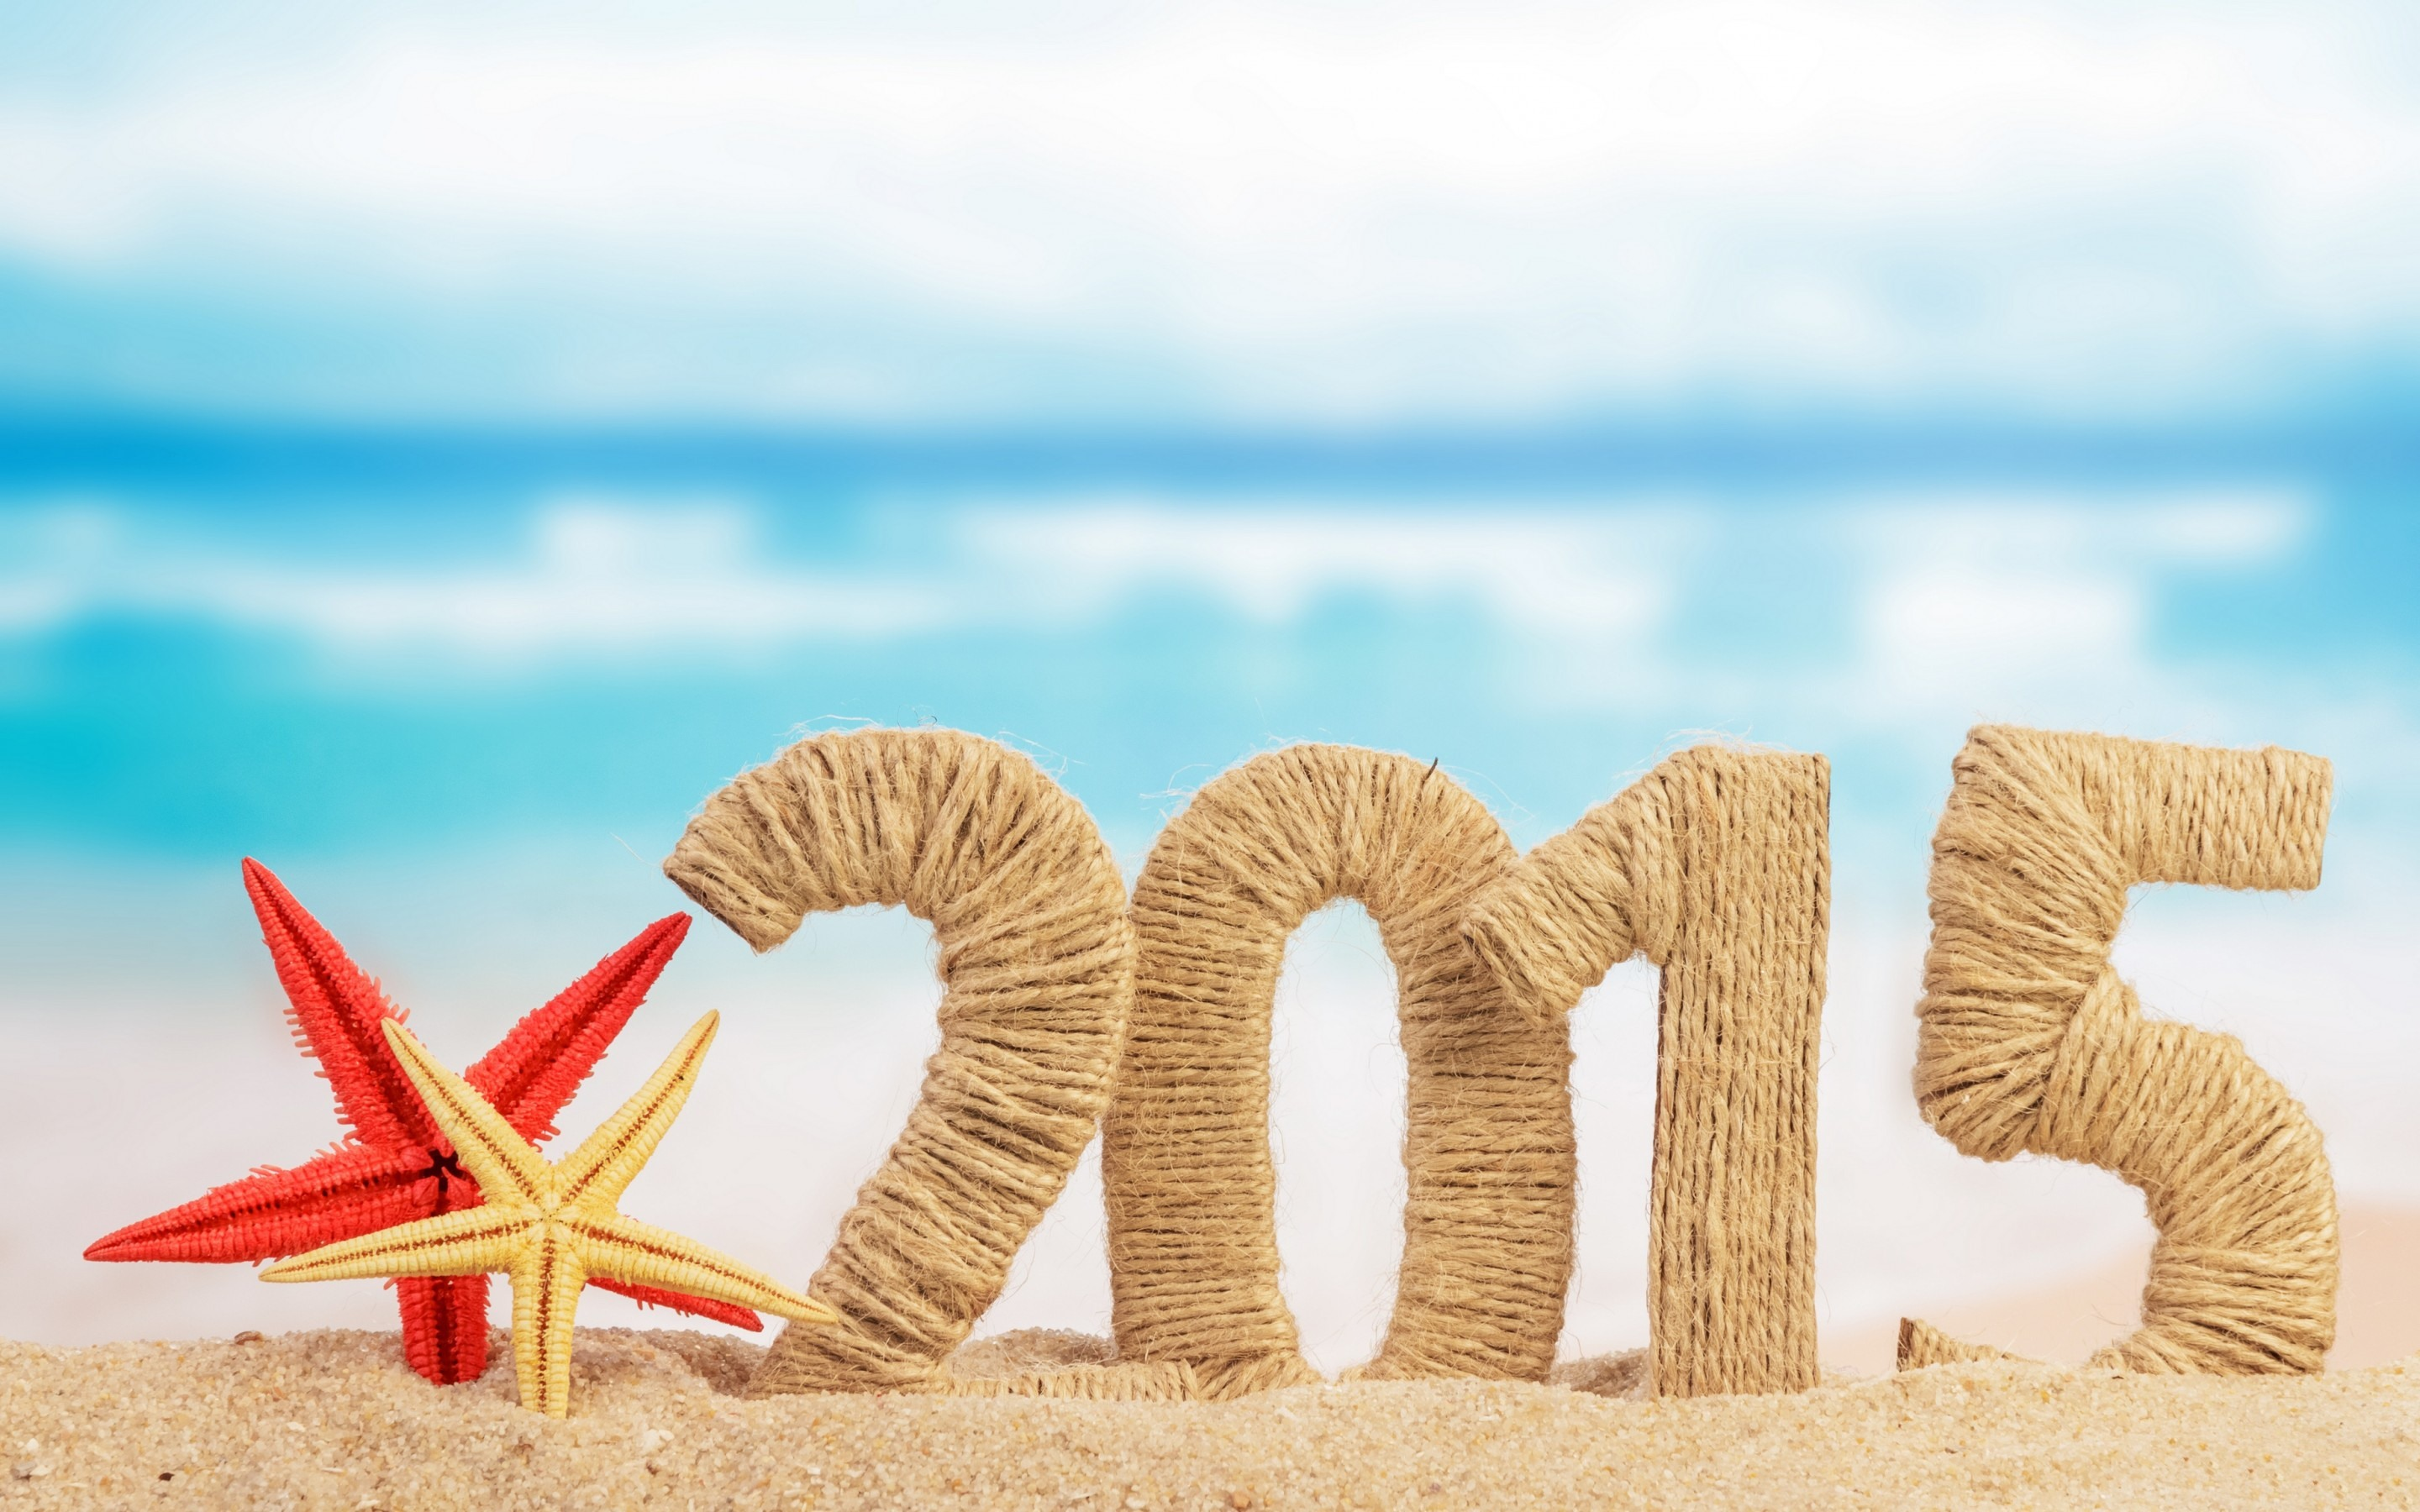 HD Wallpapers 2015 New Year